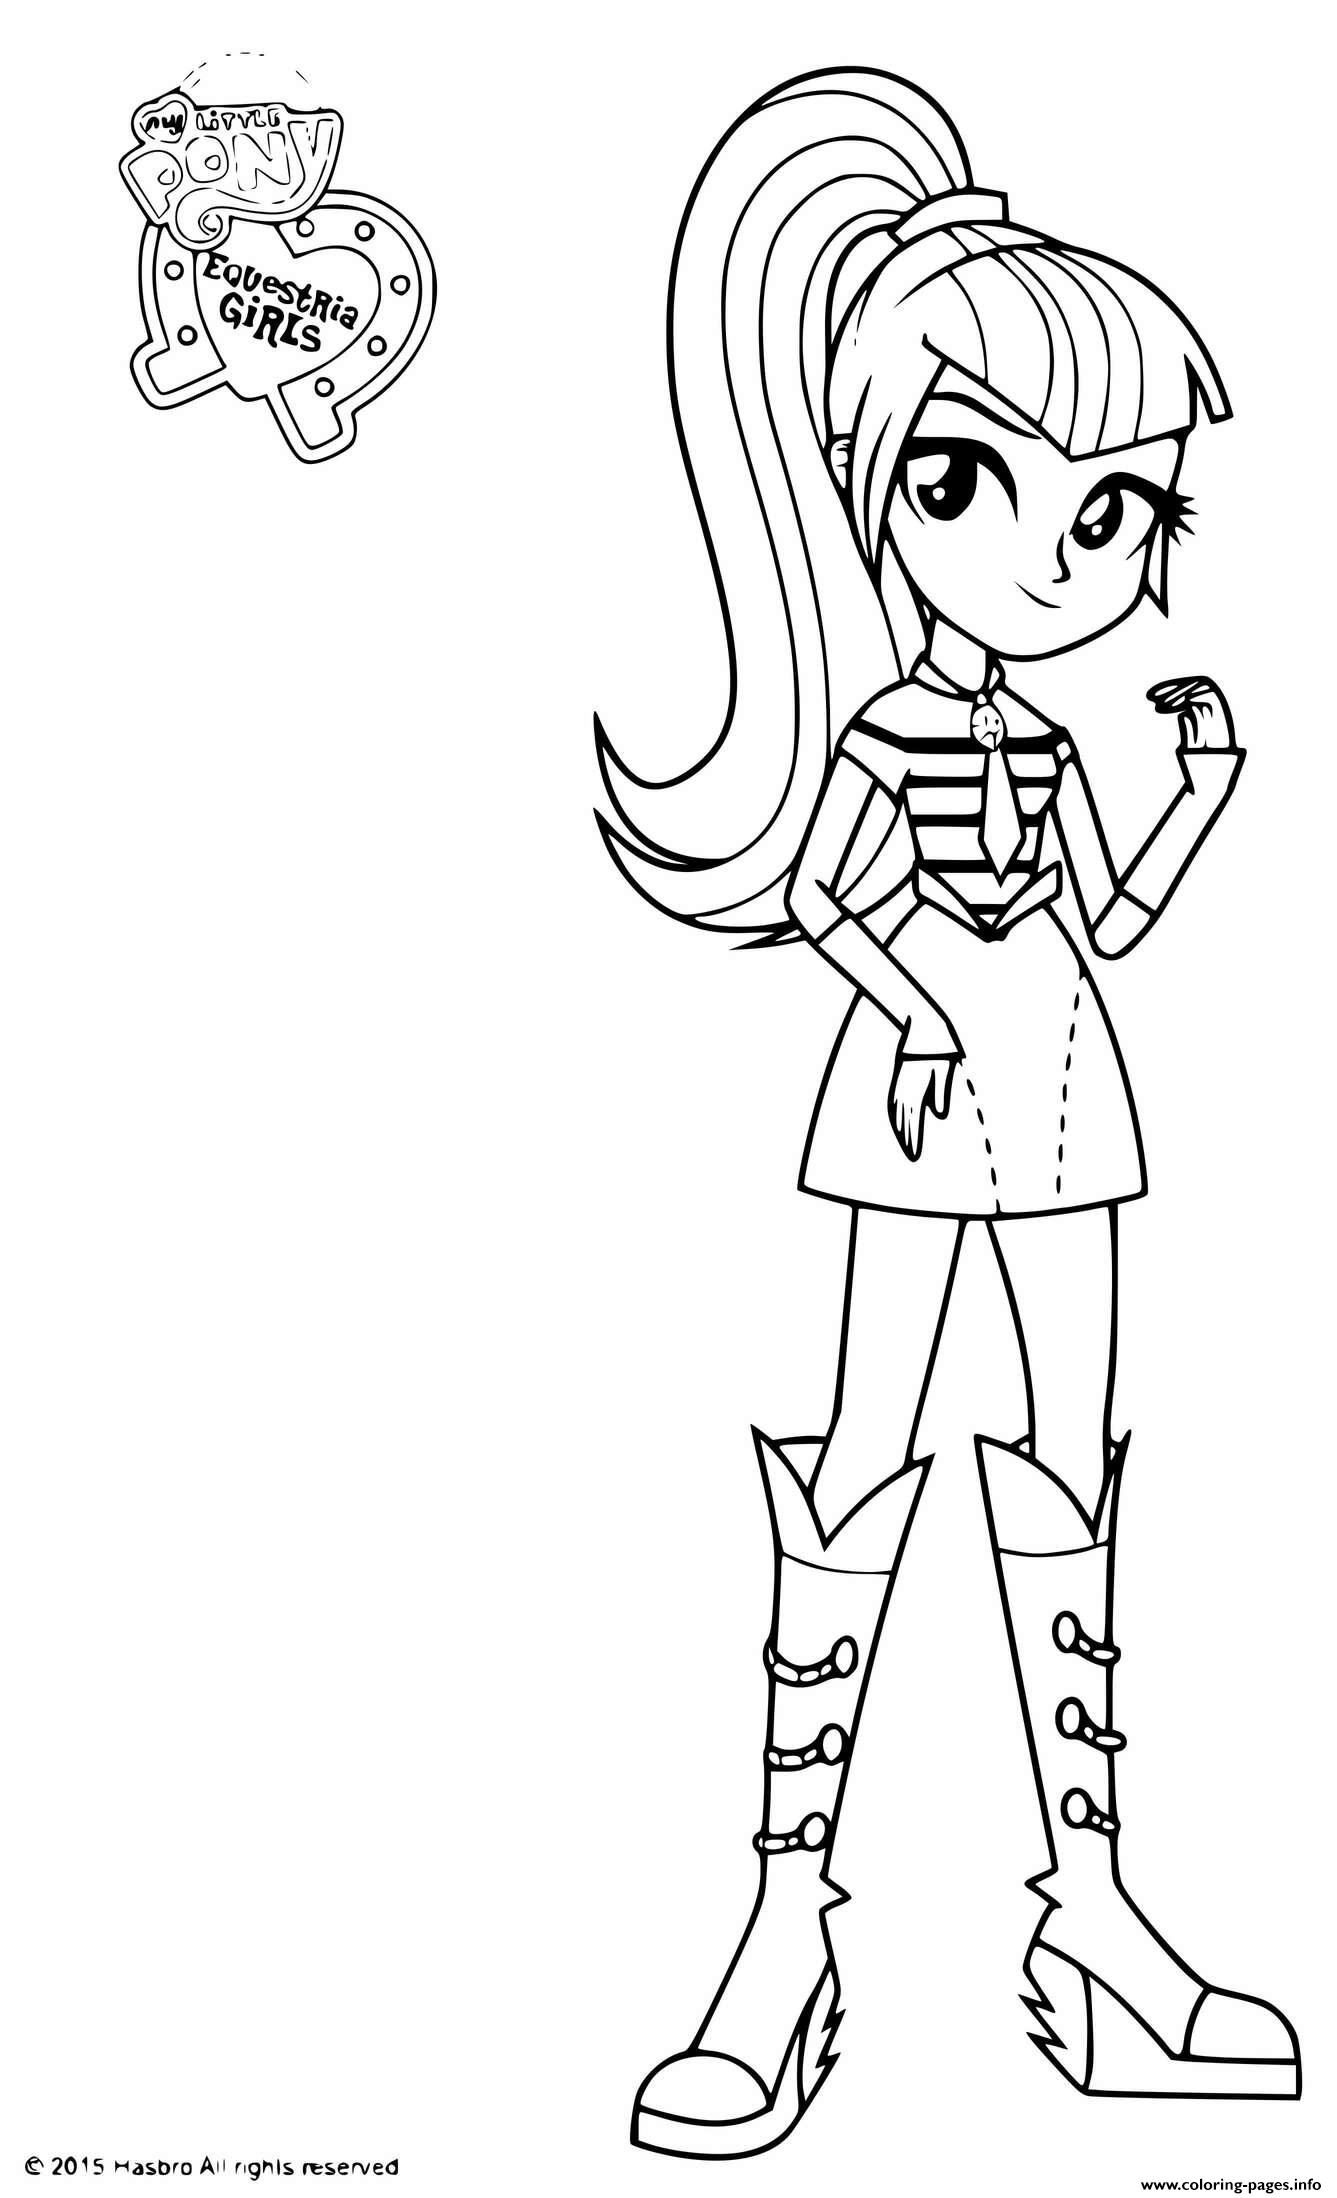 My Little Pony Equestria Girls Sonata Dusk Coloring Pages Printable